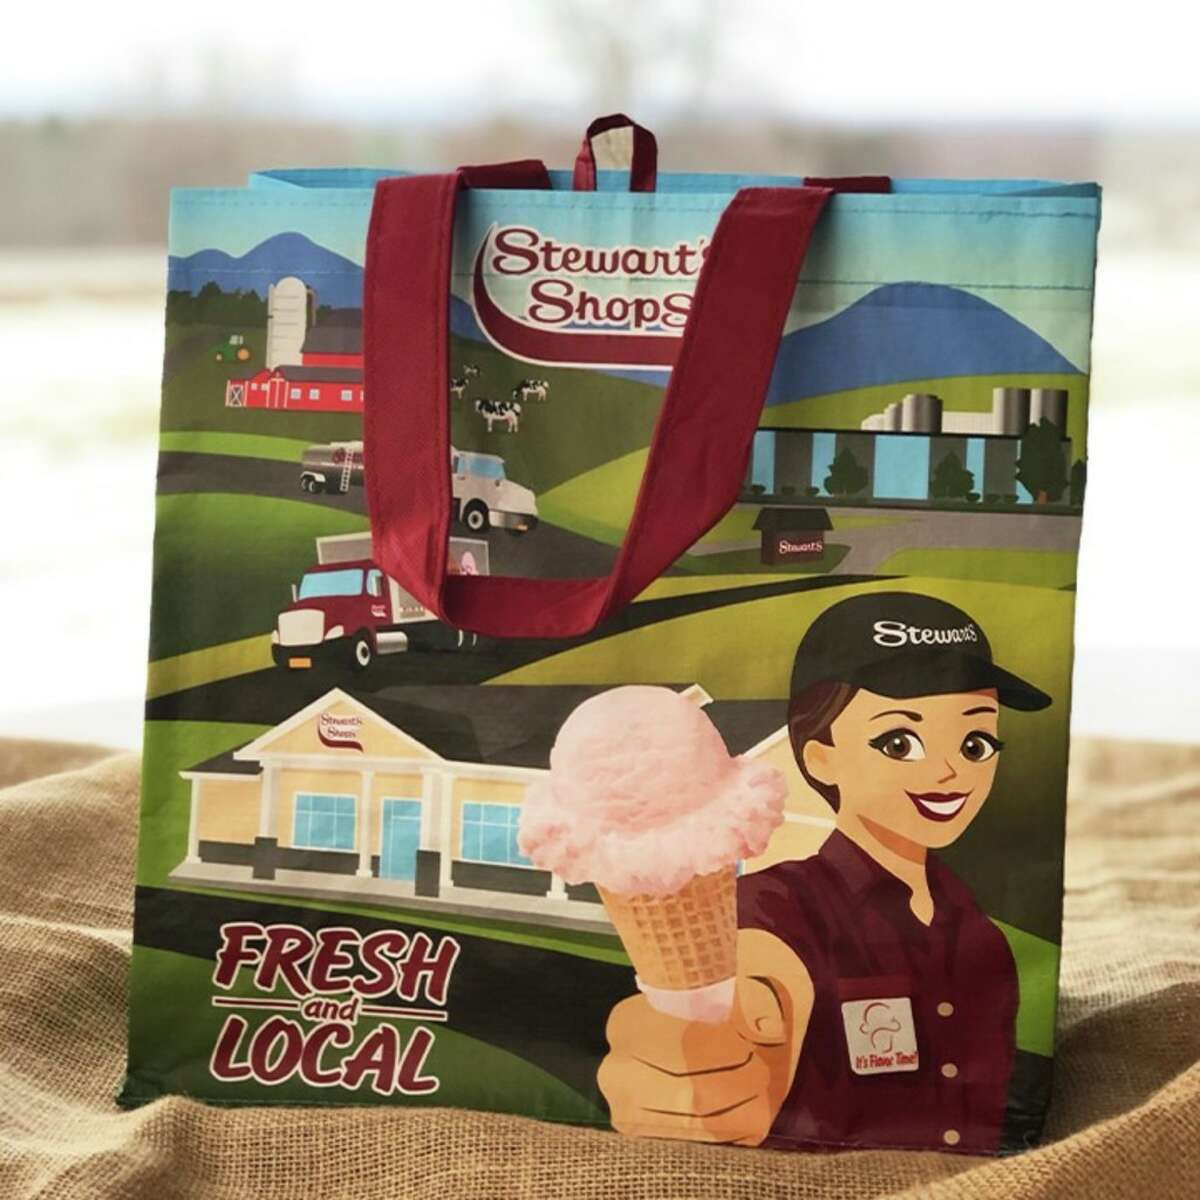 The 99 cent Stewart's Shops bag is being sold now in all stores after New York began its plastic bag ban on March 1, 2020.